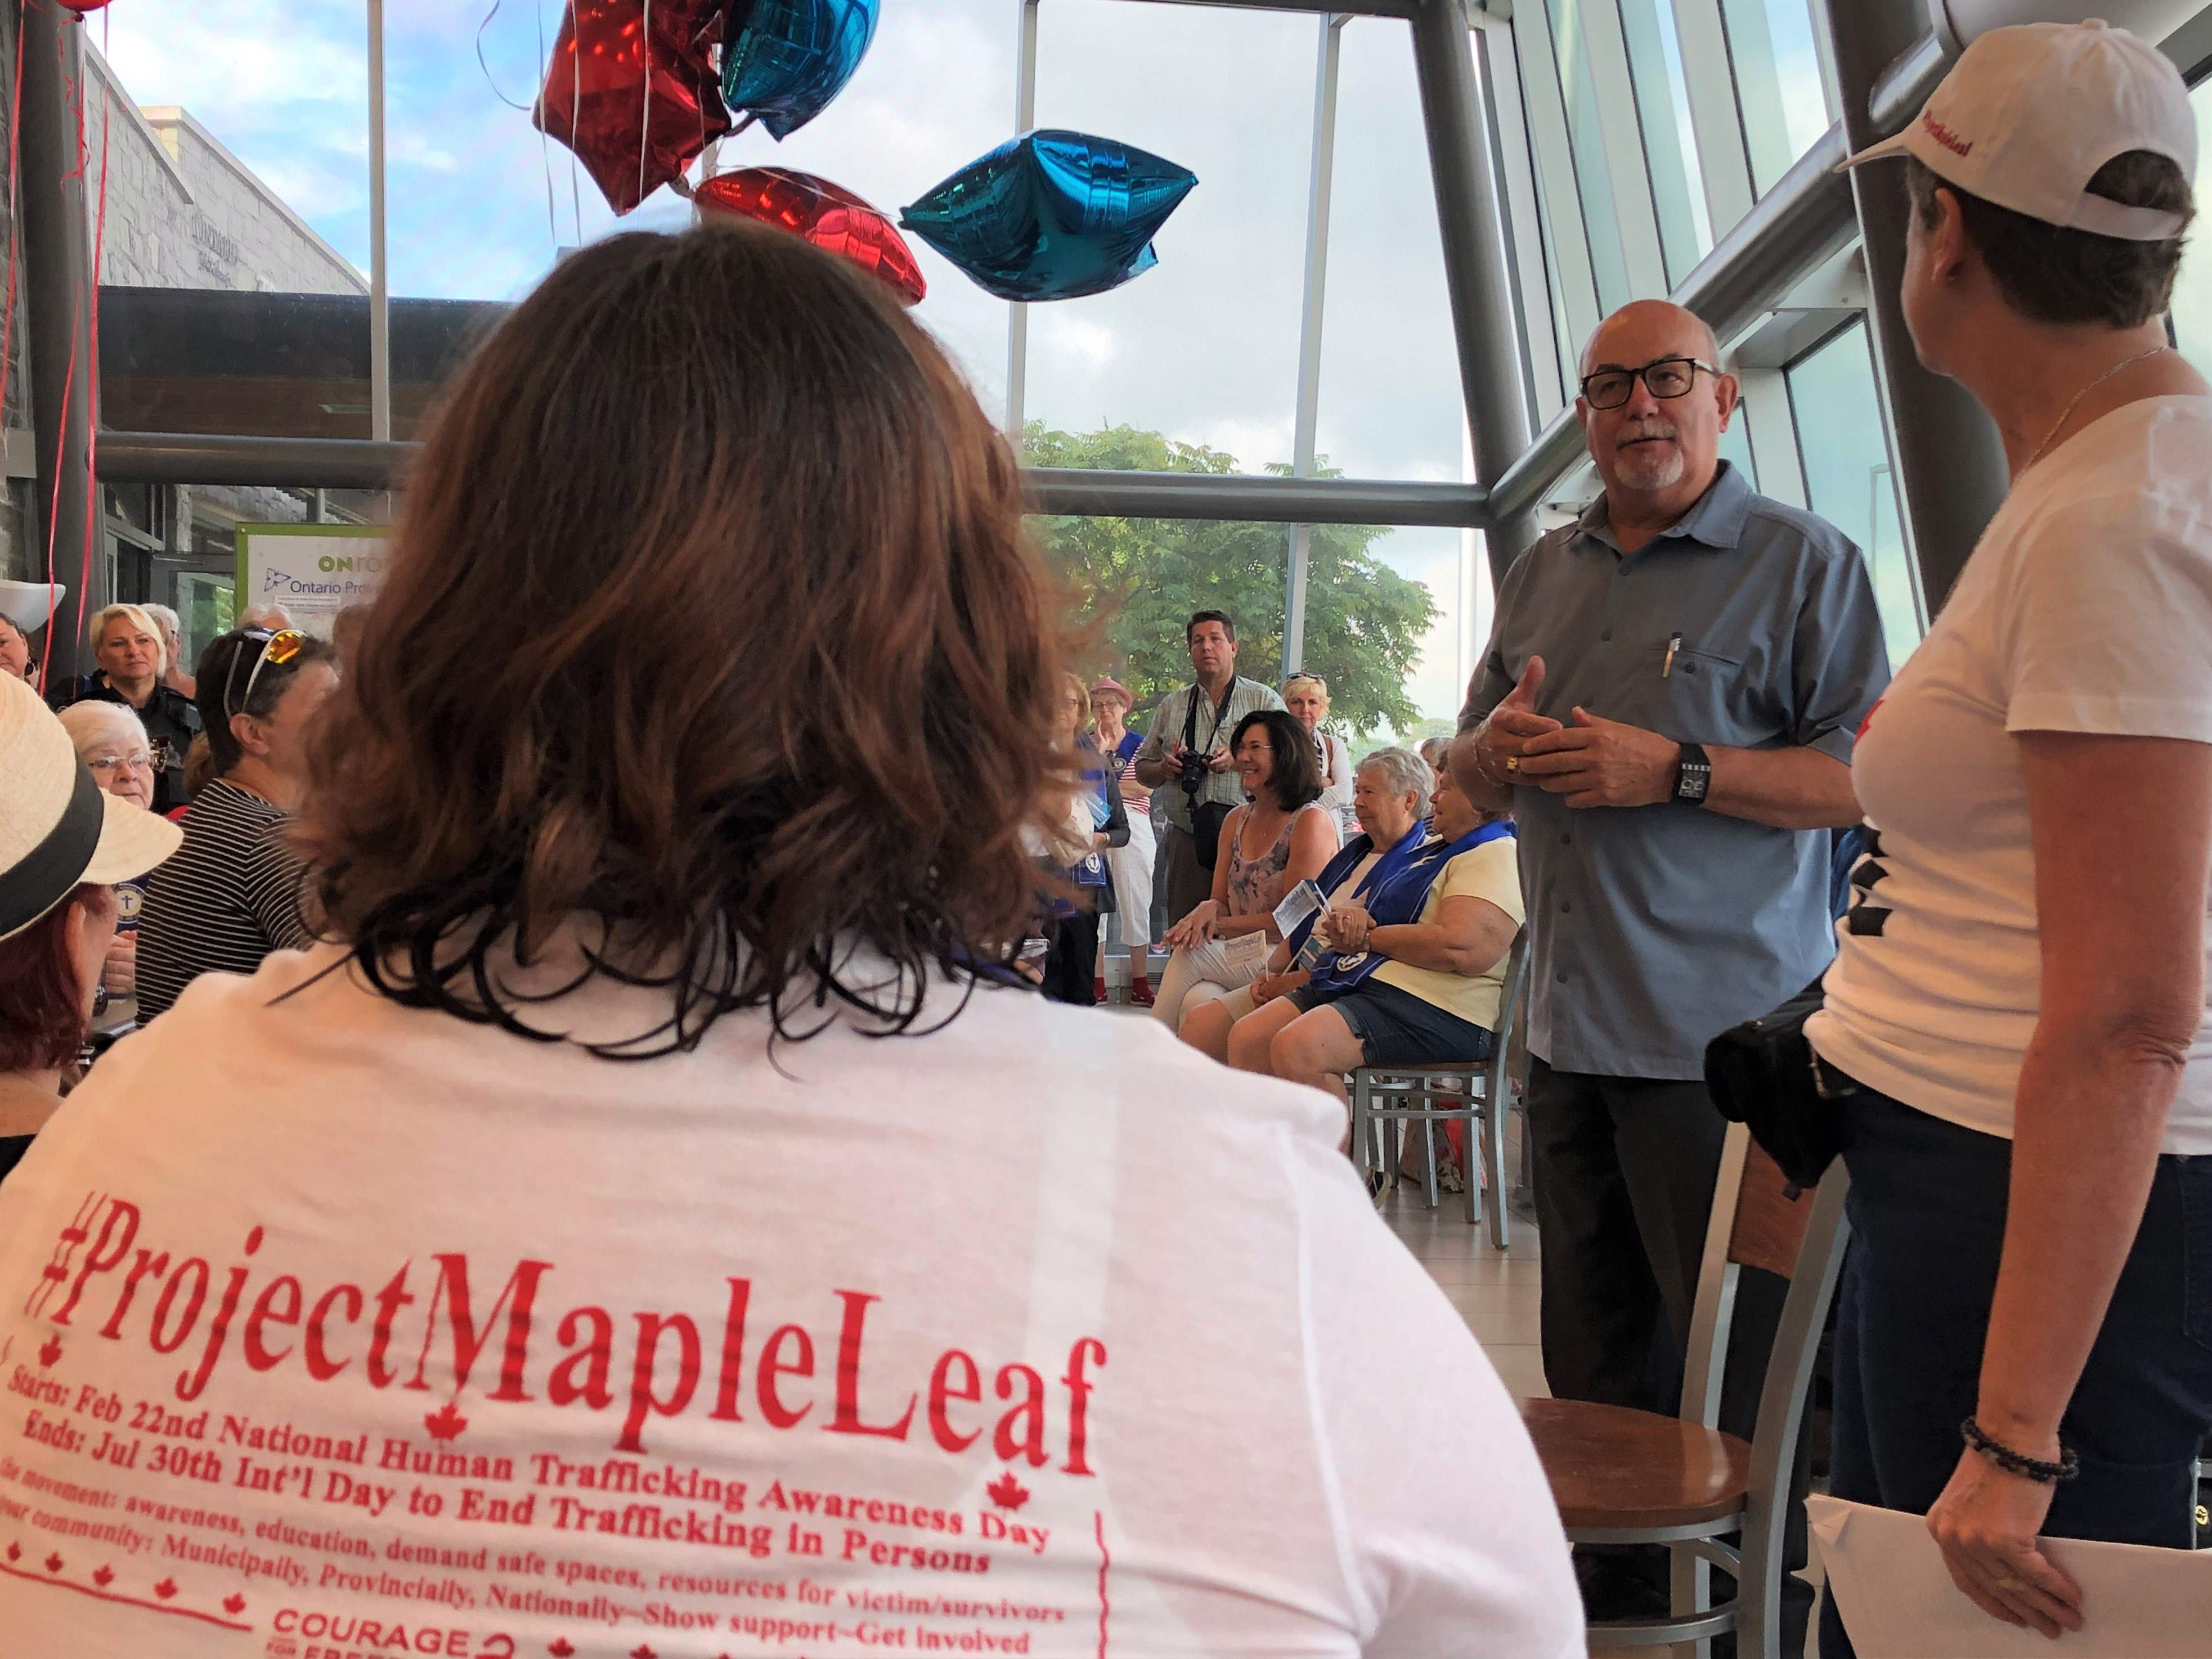 Essex County Warden Gary McNamara speaks at the Project Maple Leaf event against human trafficking in Tilbury.